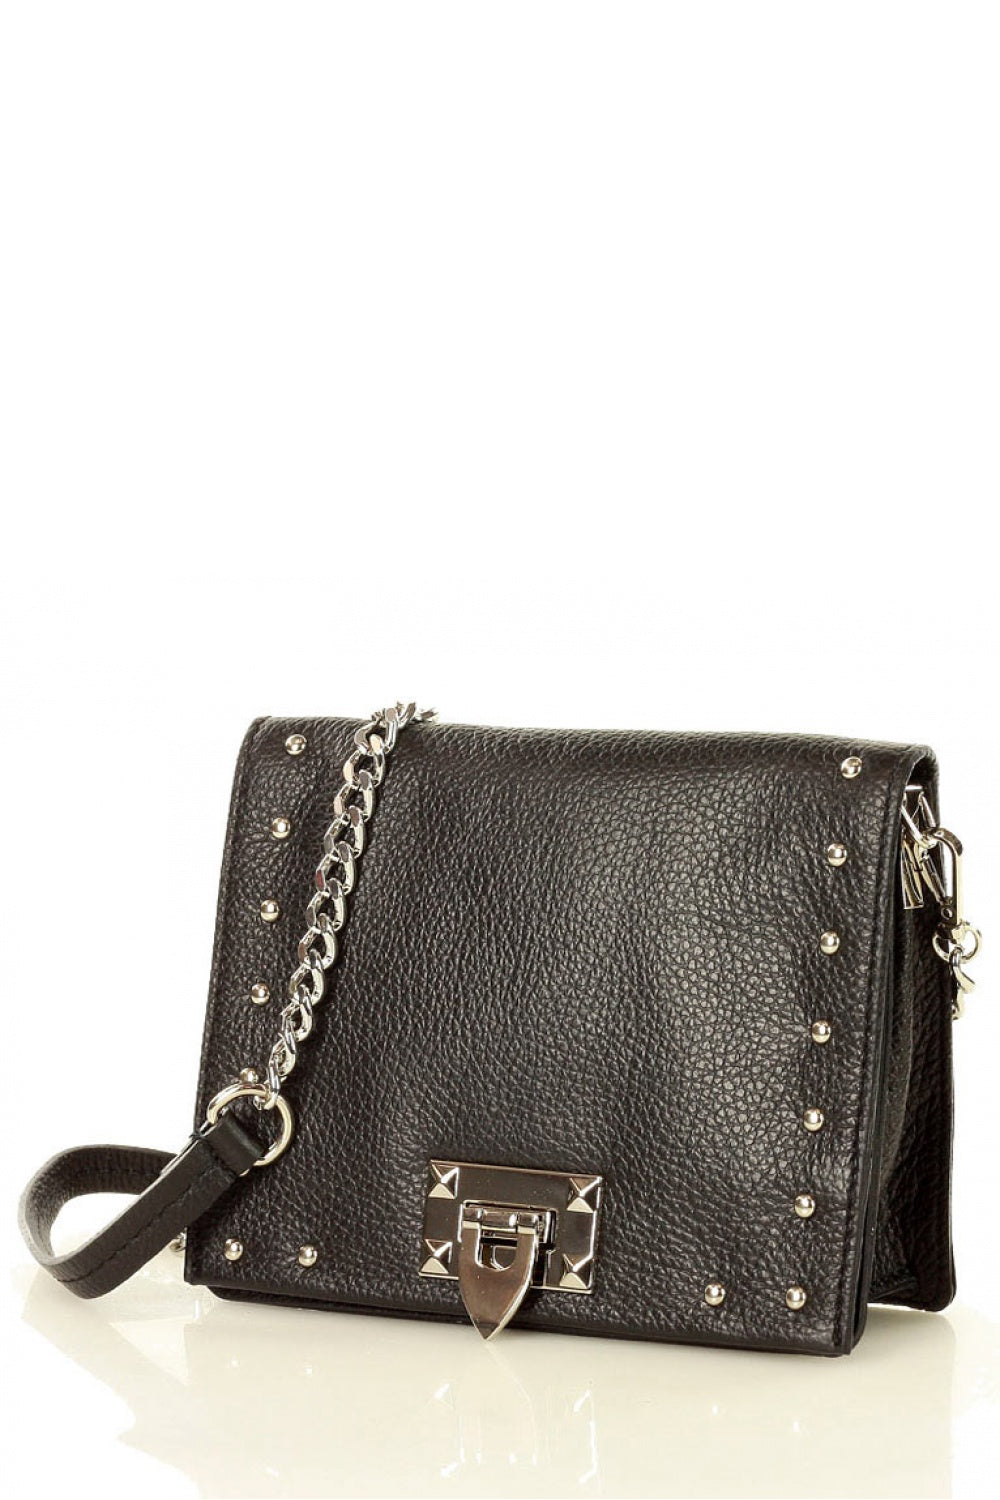 Rocking Purse 141627 Mazzini